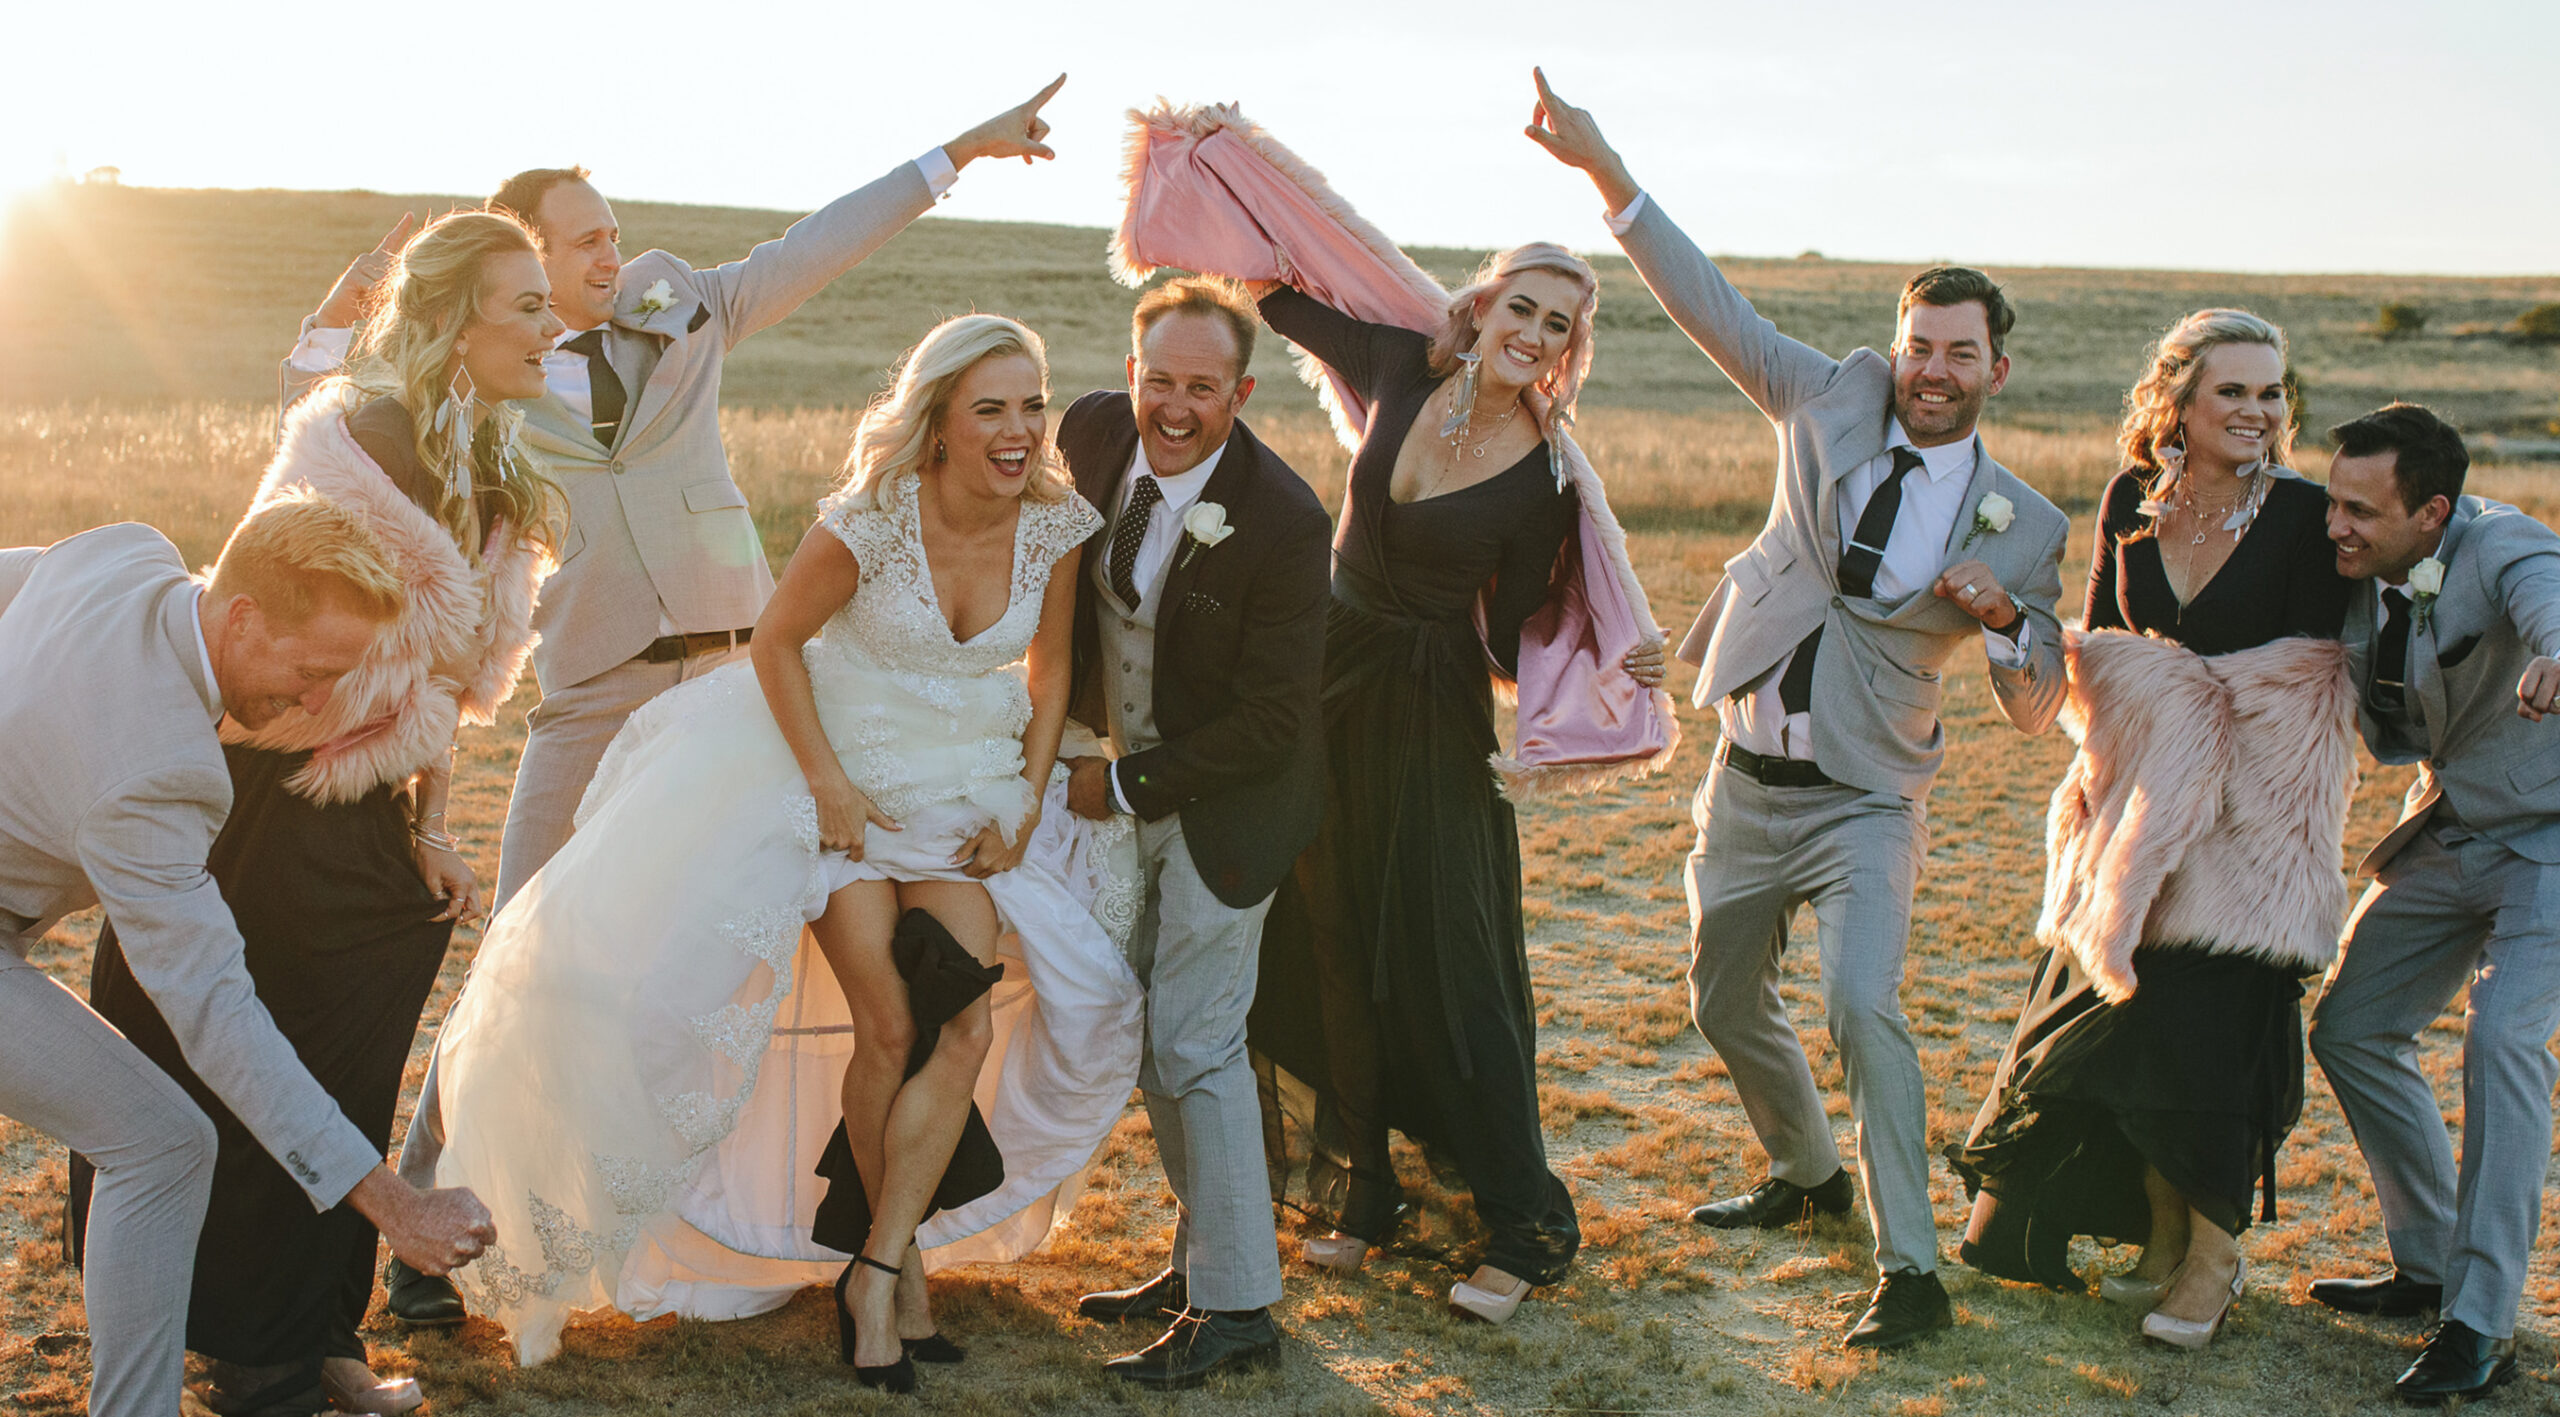 FC-LEE-Tanya-Strauss-wedding-Cover-scaled